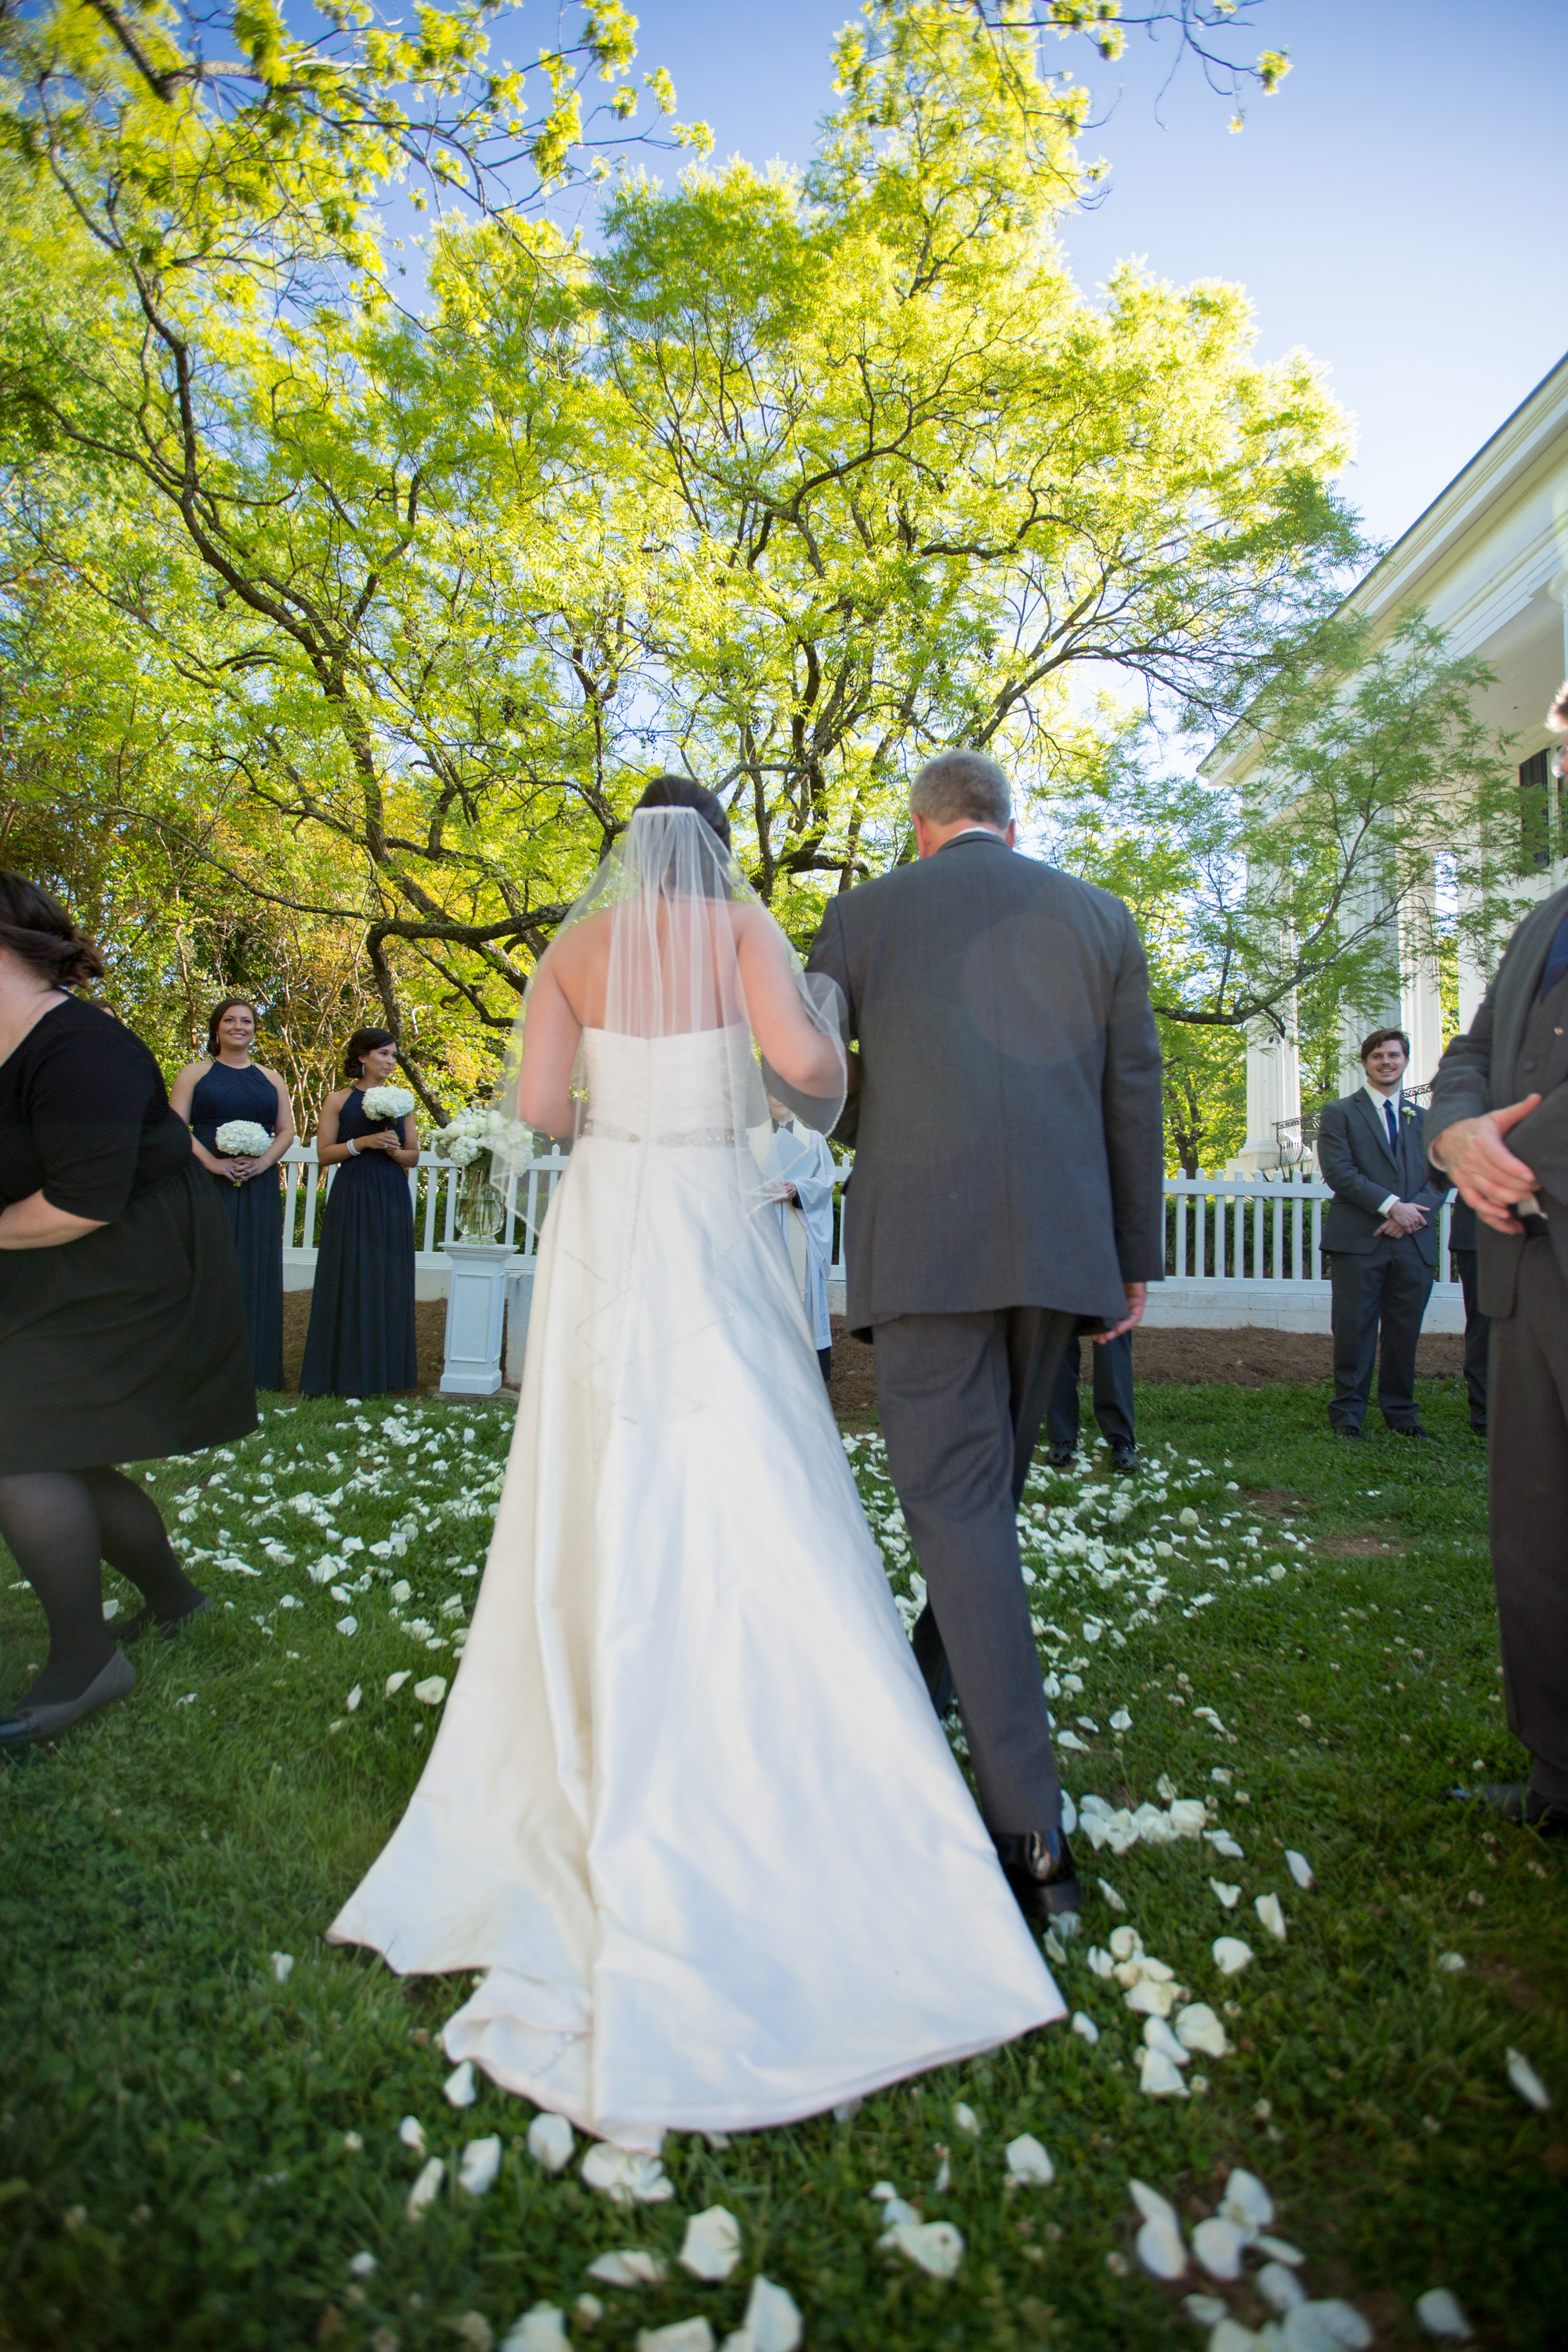 We're obsessed with this photo, so here it is again. April wedding in the Side Yard, photo by  Valerie & Co. Photographers